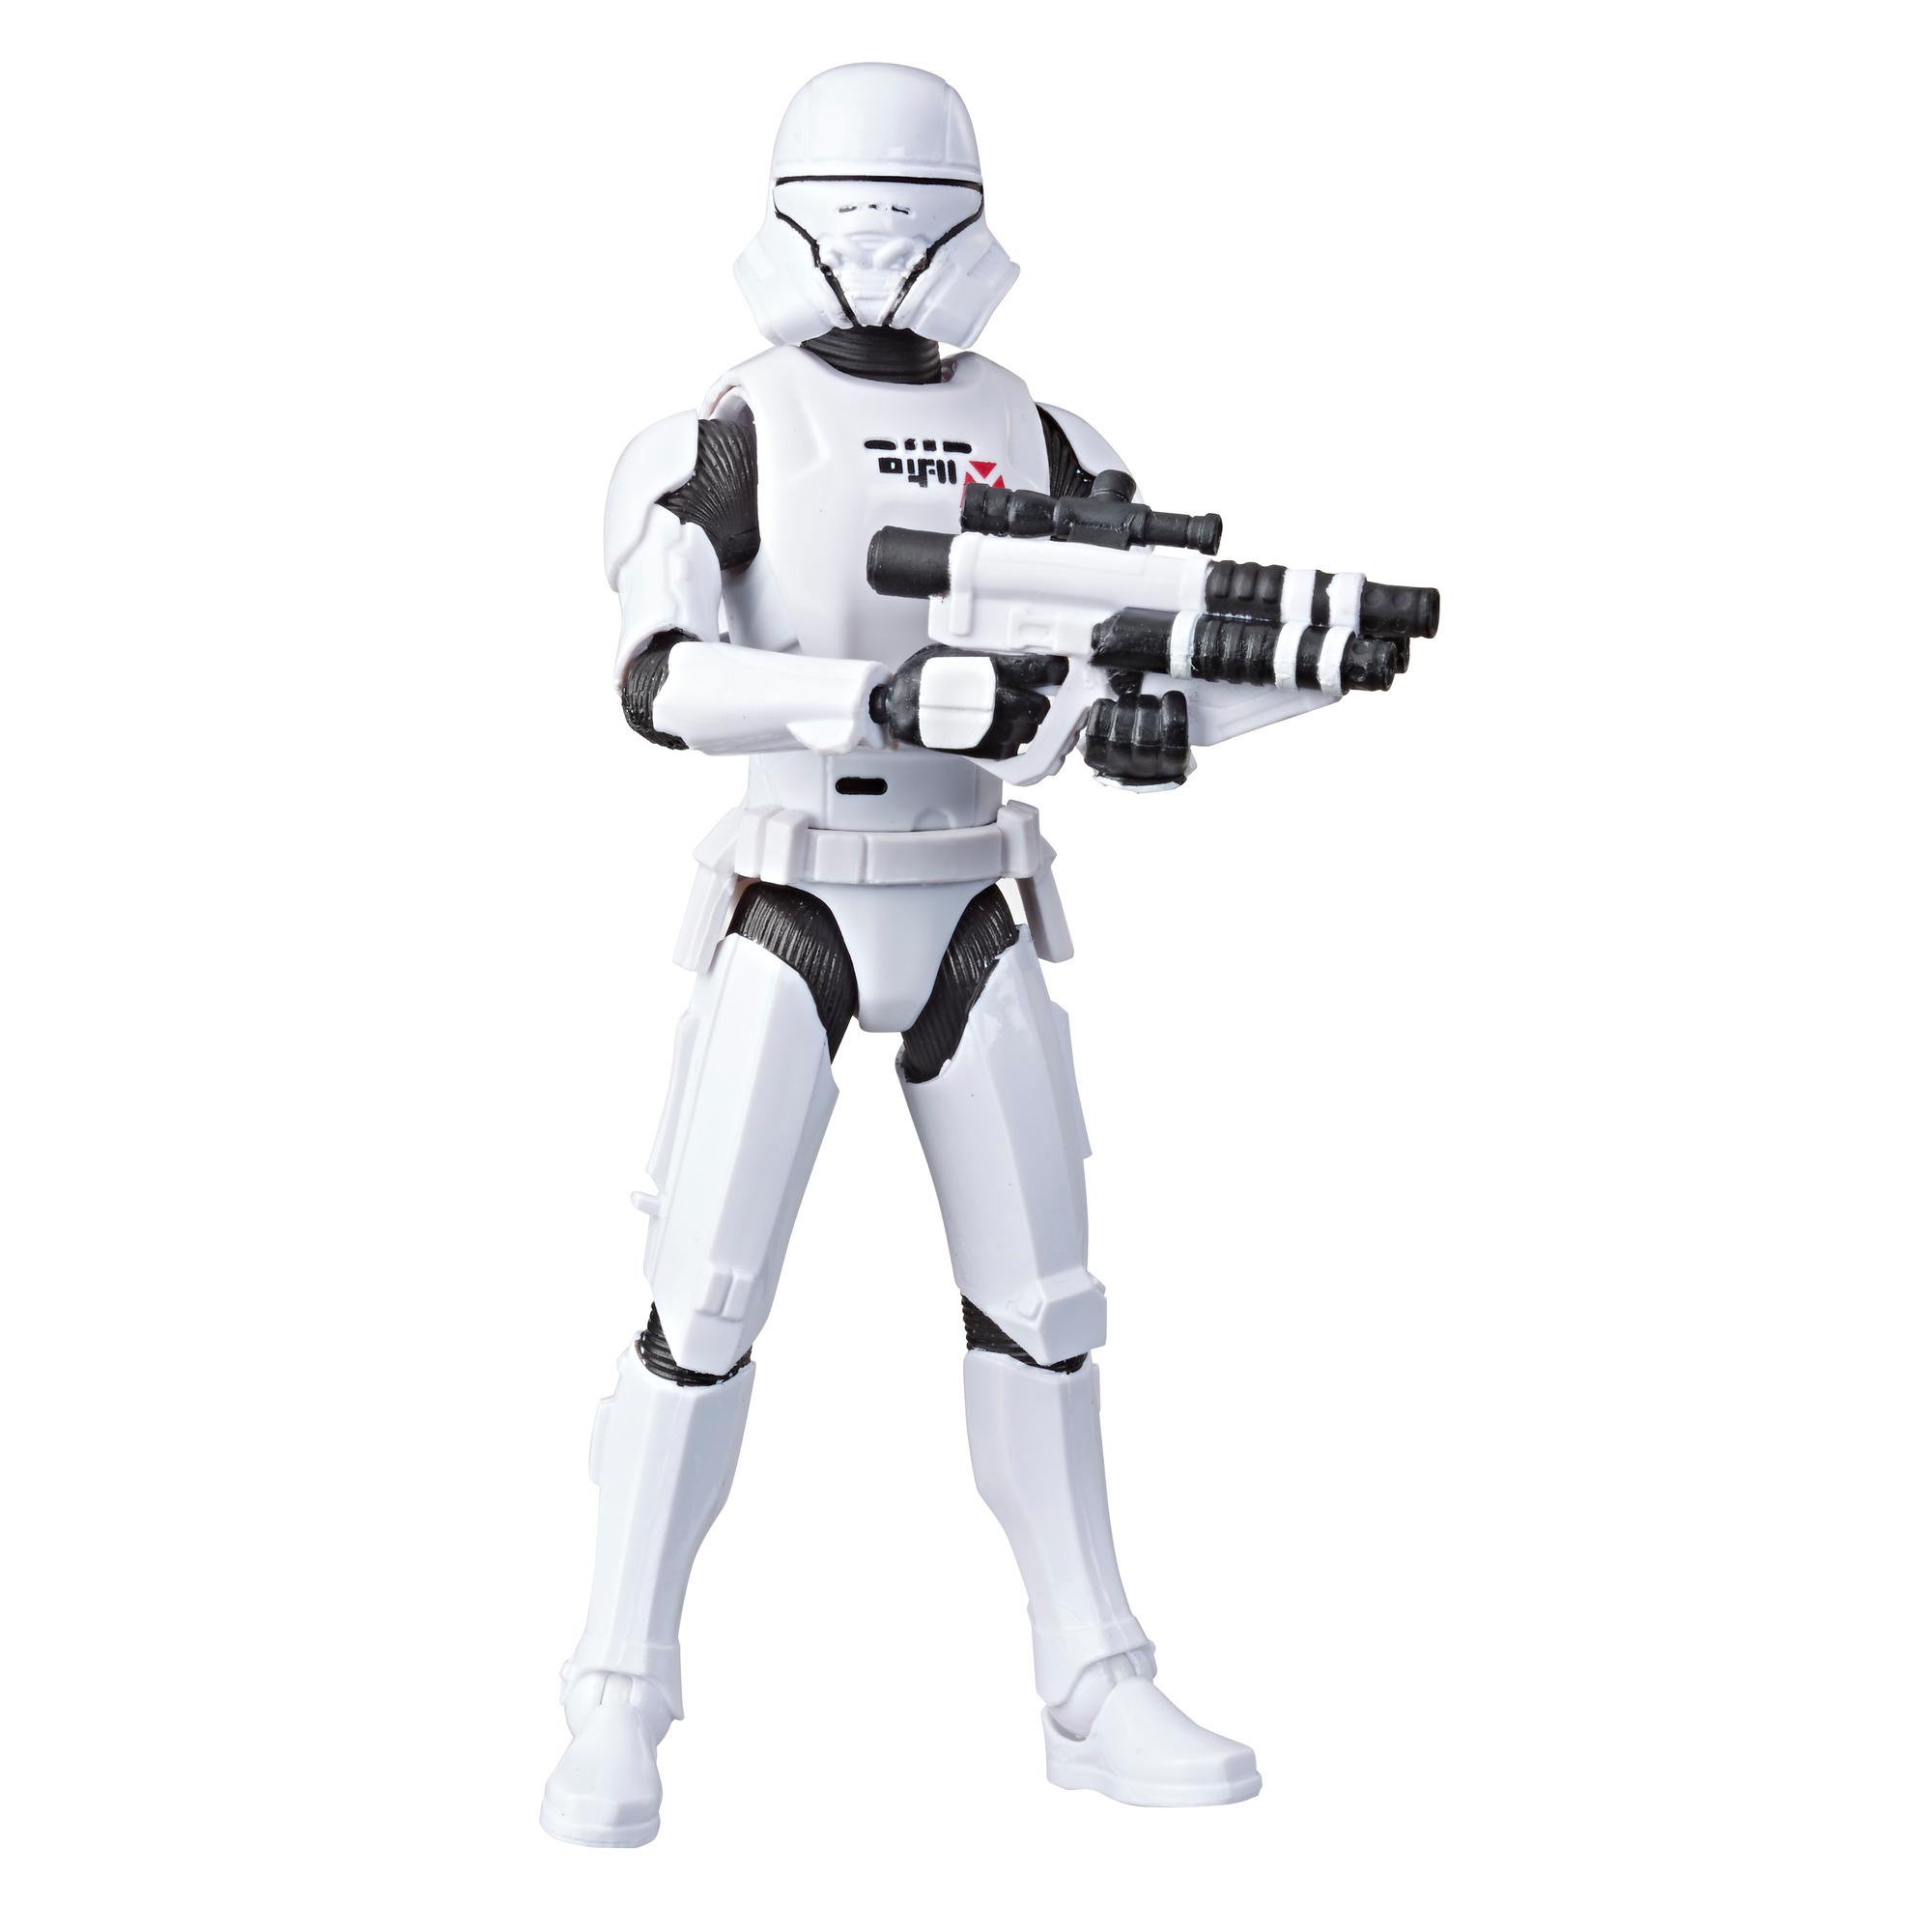 STAR WARS FIGURAS PERSONAGENS EPISÓDIO 9 JET TROOPER